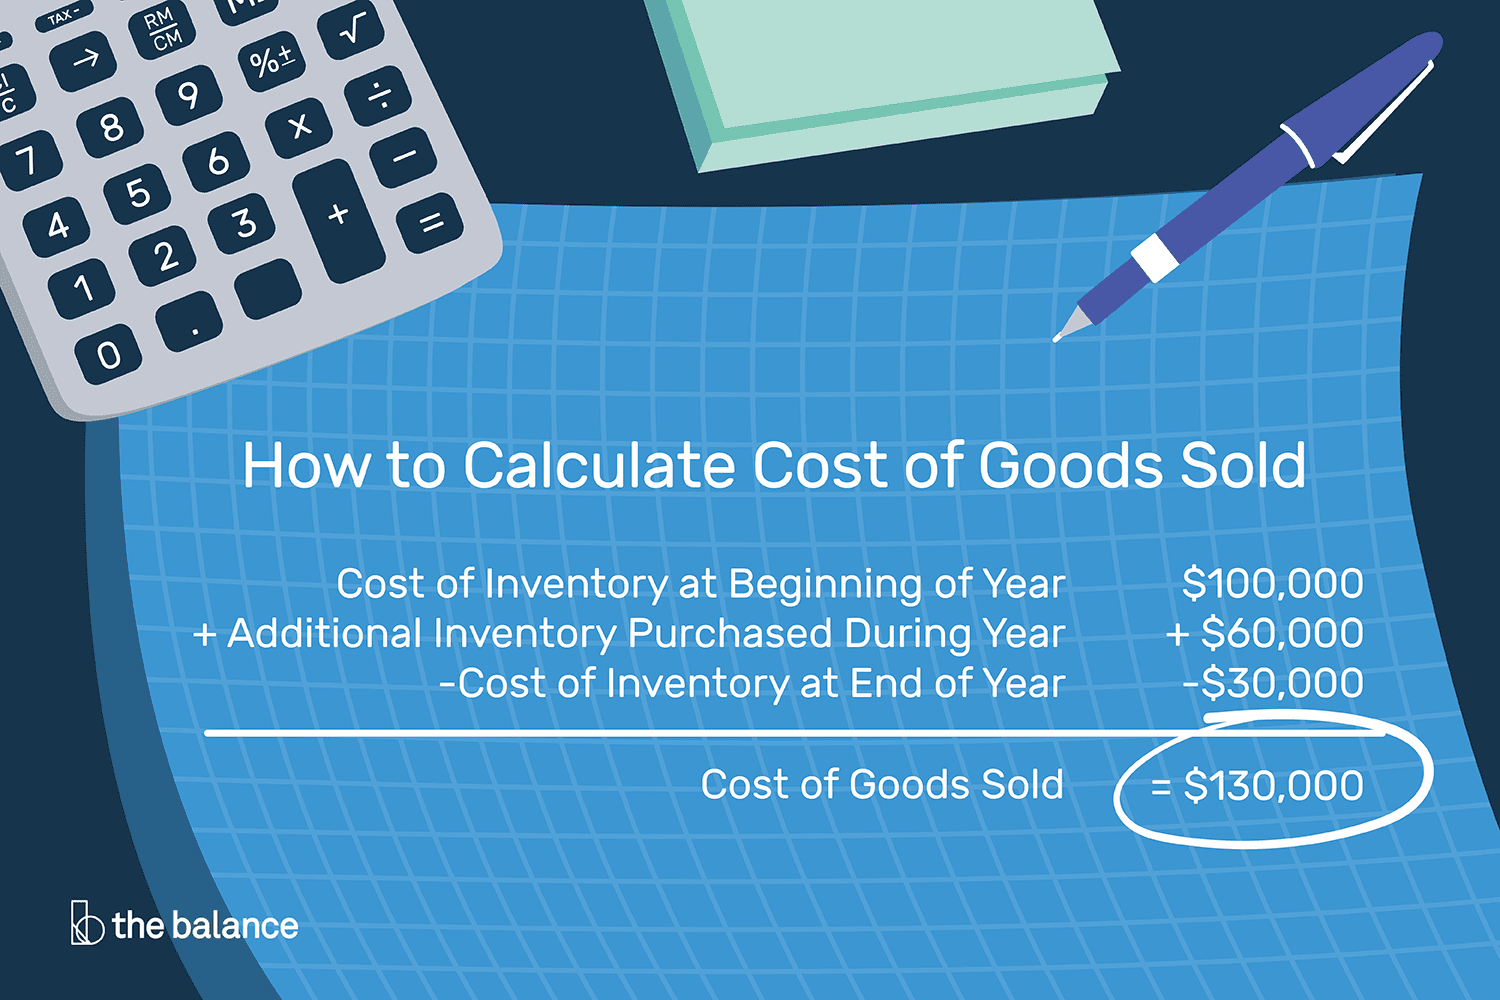 Stock Cost Basis Spreadsheet Regarding How To Calculate Cost Of Goods Sold